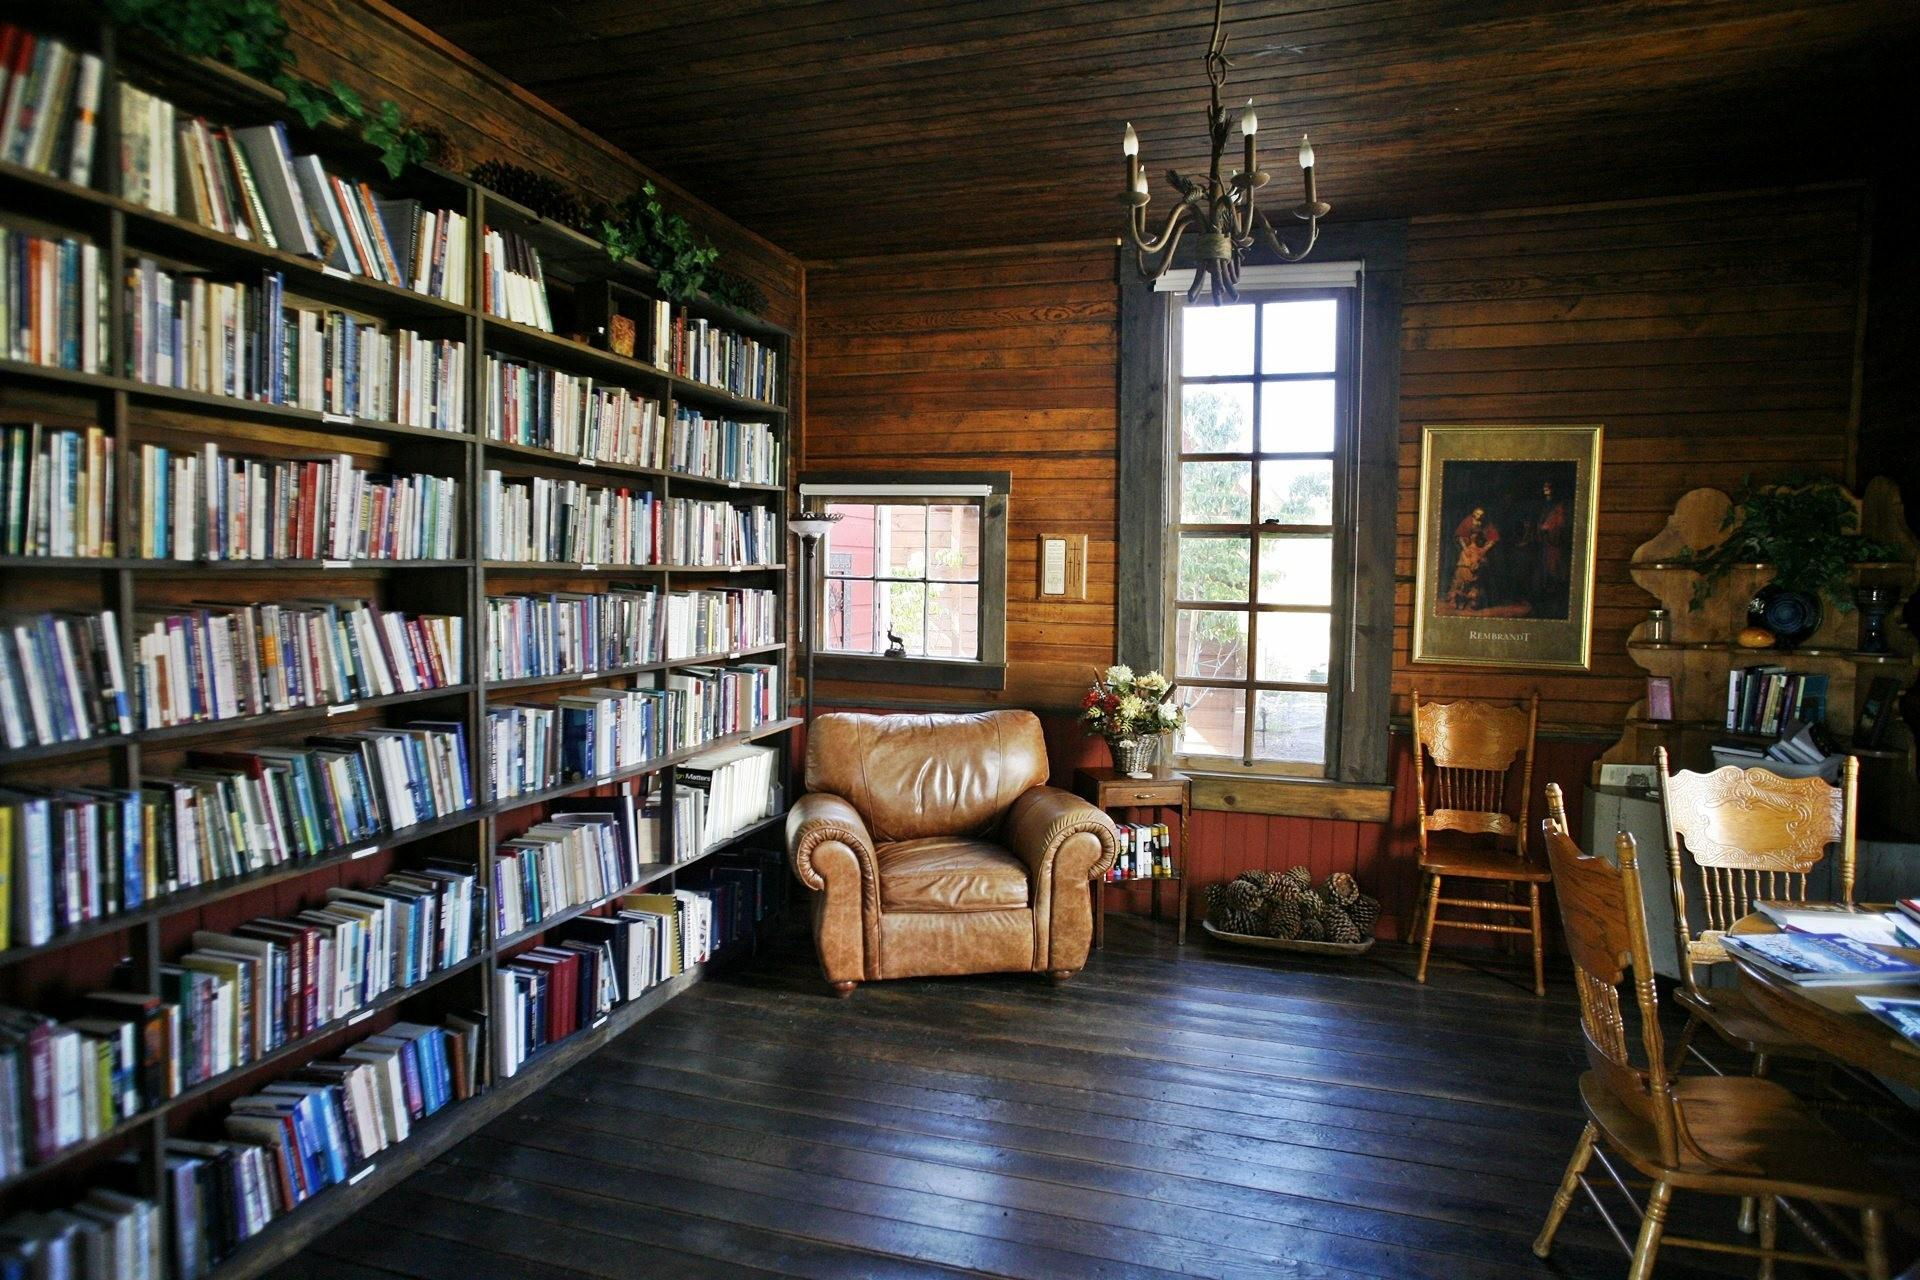 Comfortable Chairs Reading Space Ideas Home Furniture